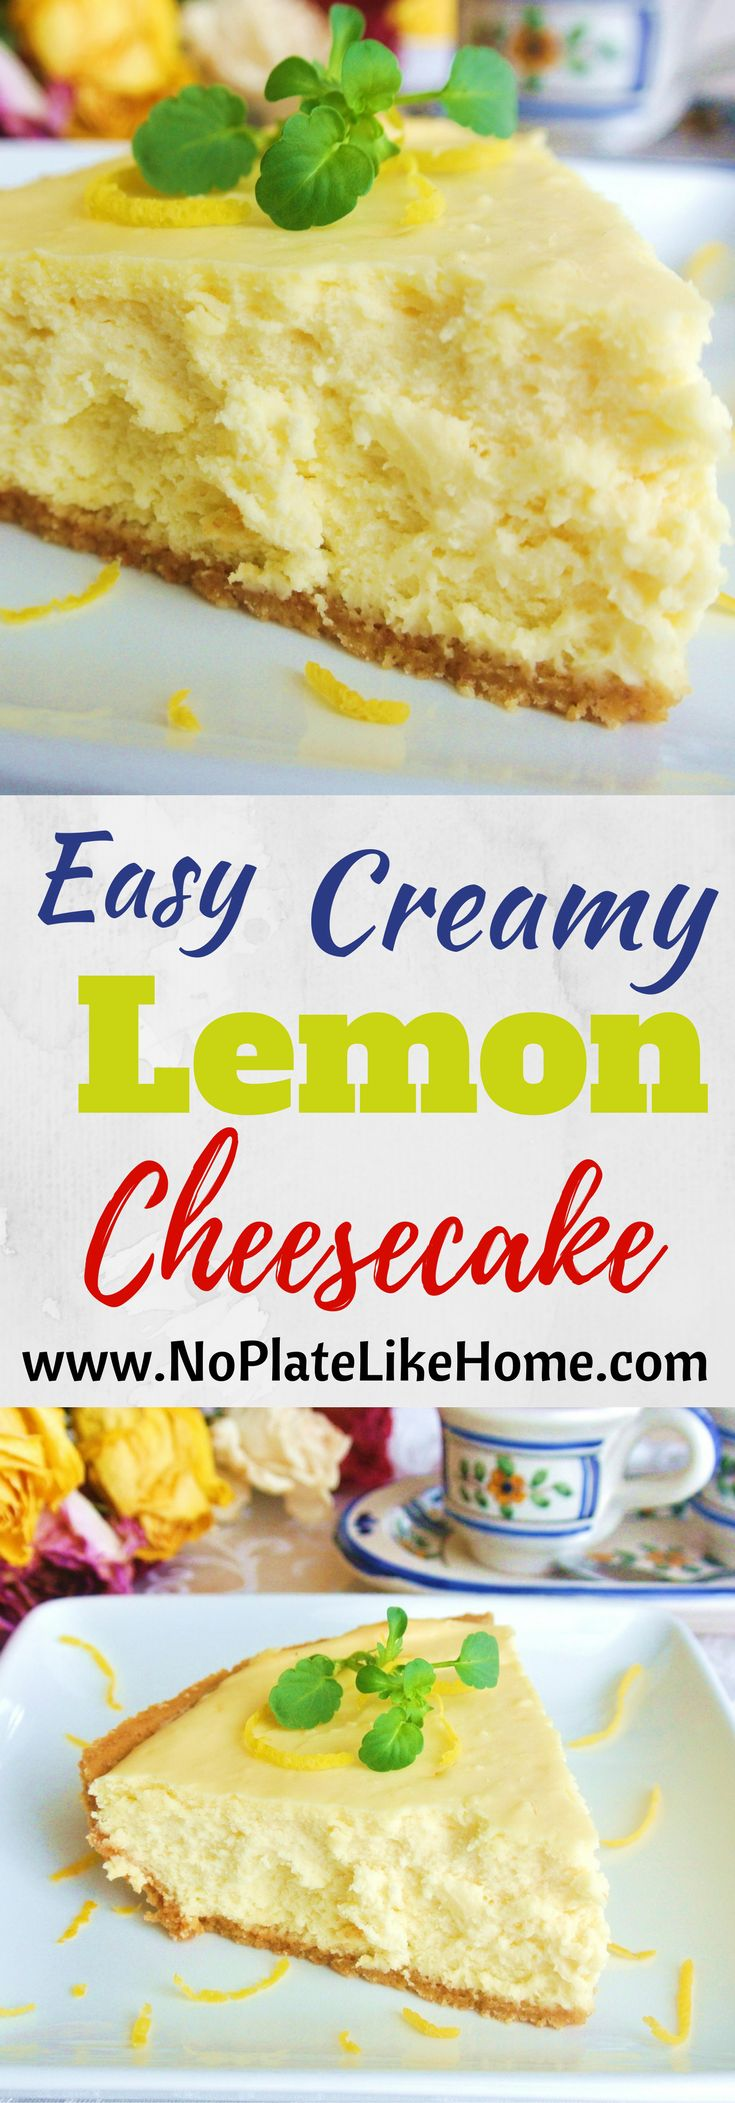 This easy creamy lemon cheesecake recipe is a bit tart and full of lemon flavor. It is made with only 6 ingredients- Kraft Philadelphia brand cream cheese, eggs, lemon, sugar, vanilla and graham cracker crust. It is a delicious dessert for any time of year and goes with nearly any cuisine!